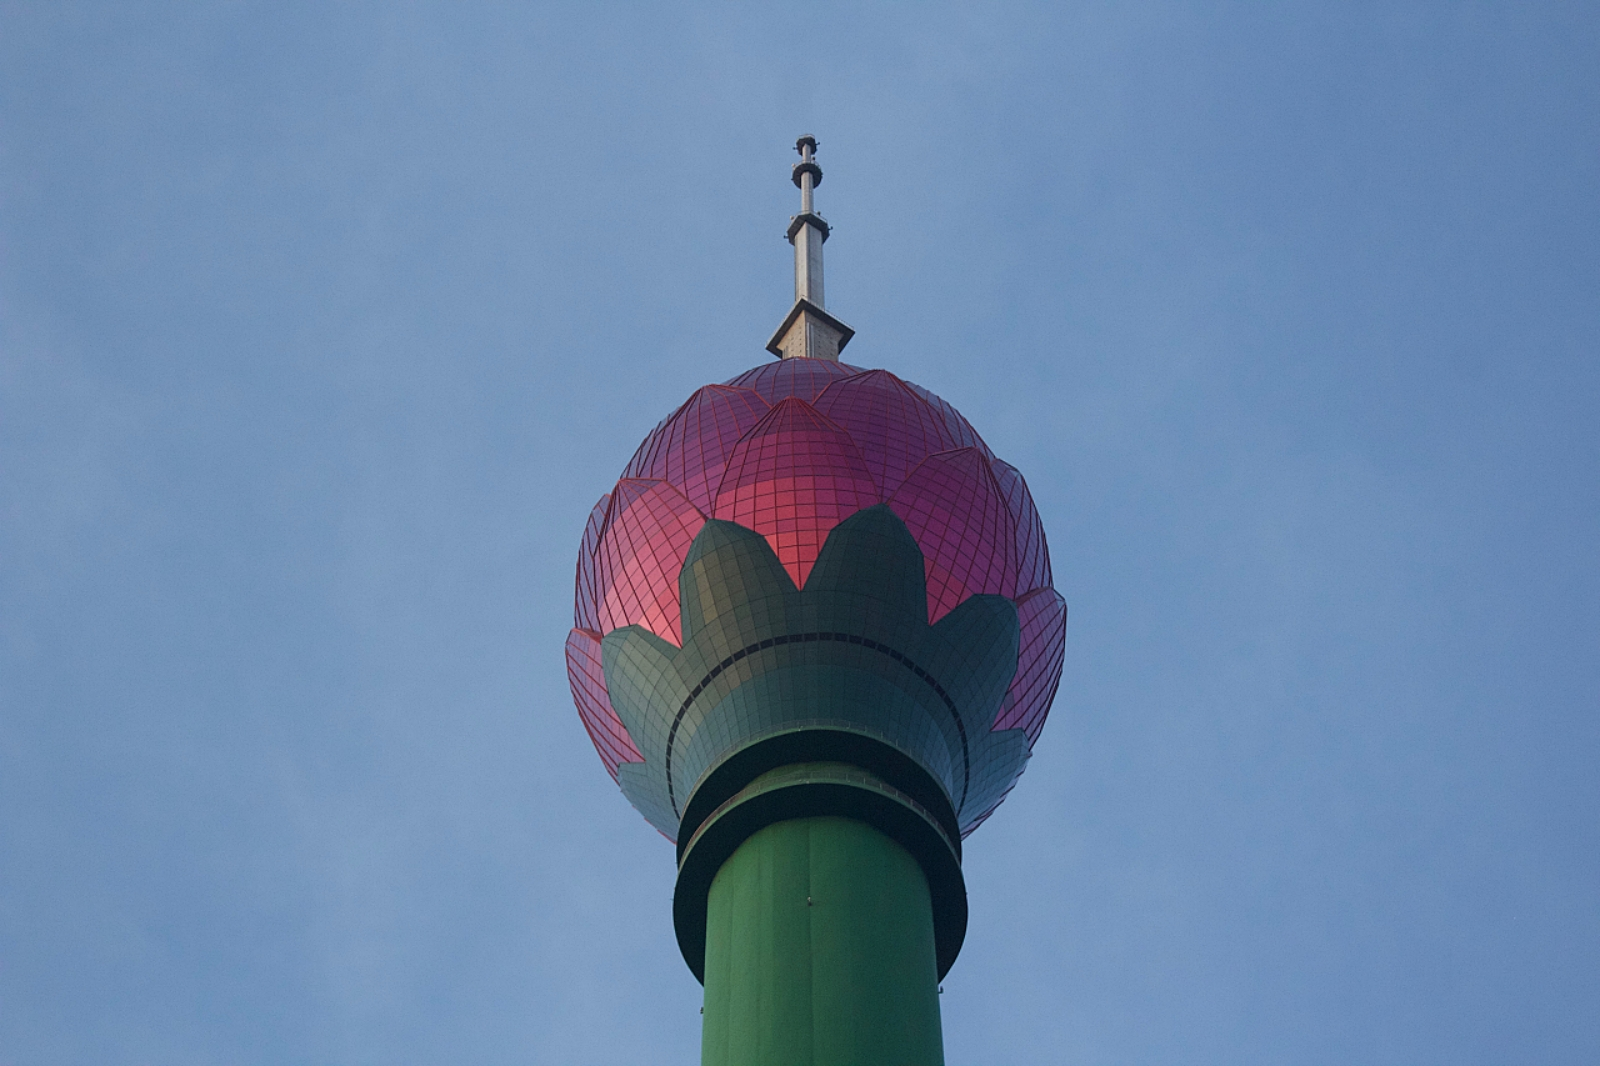 Colombo Lotus Tower